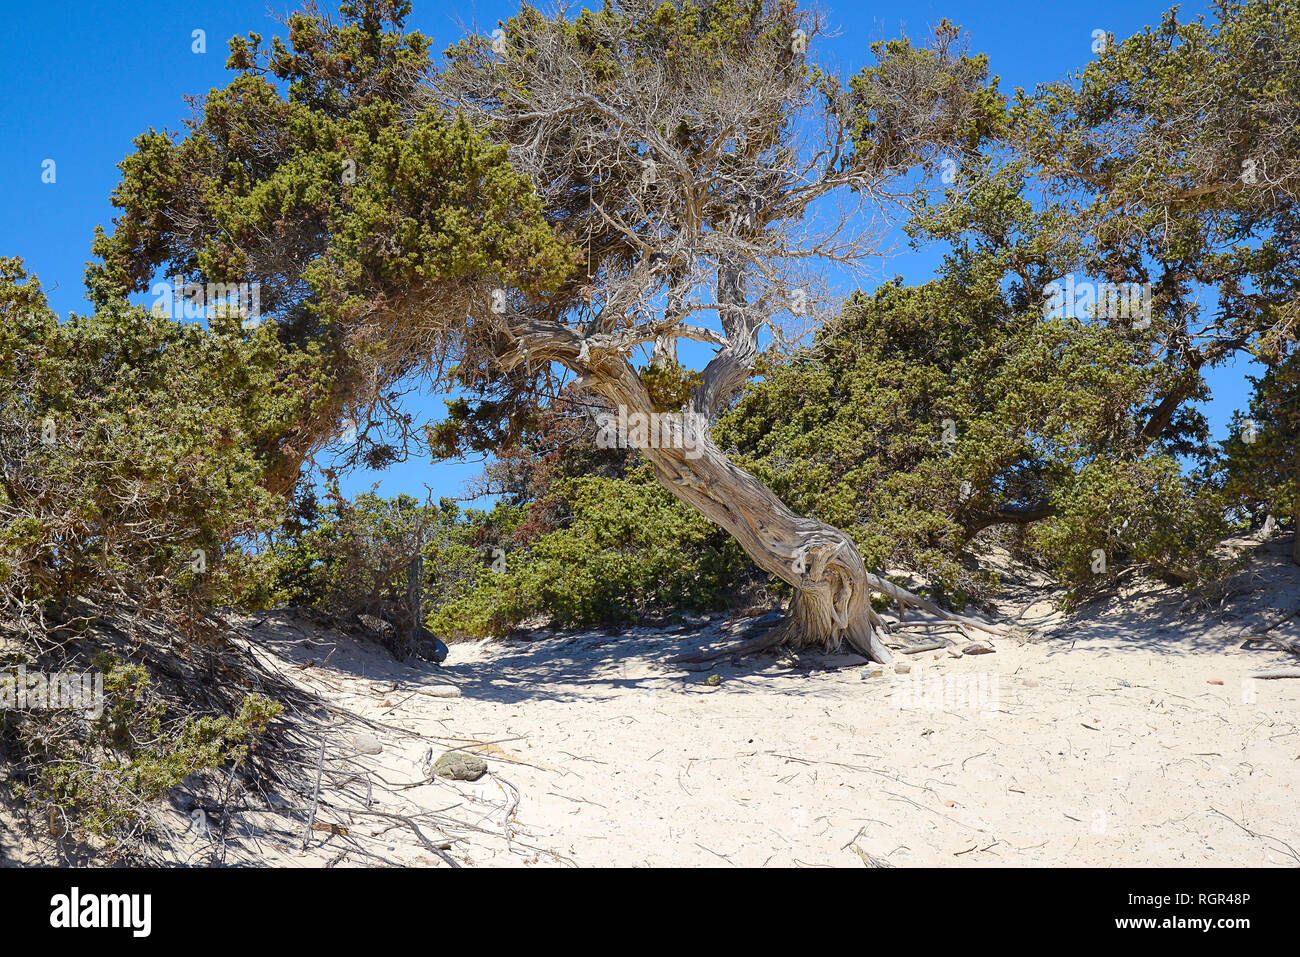 curved branched juniper tree, semi-dry, grows out of sand, near the green bushes Stock Photo